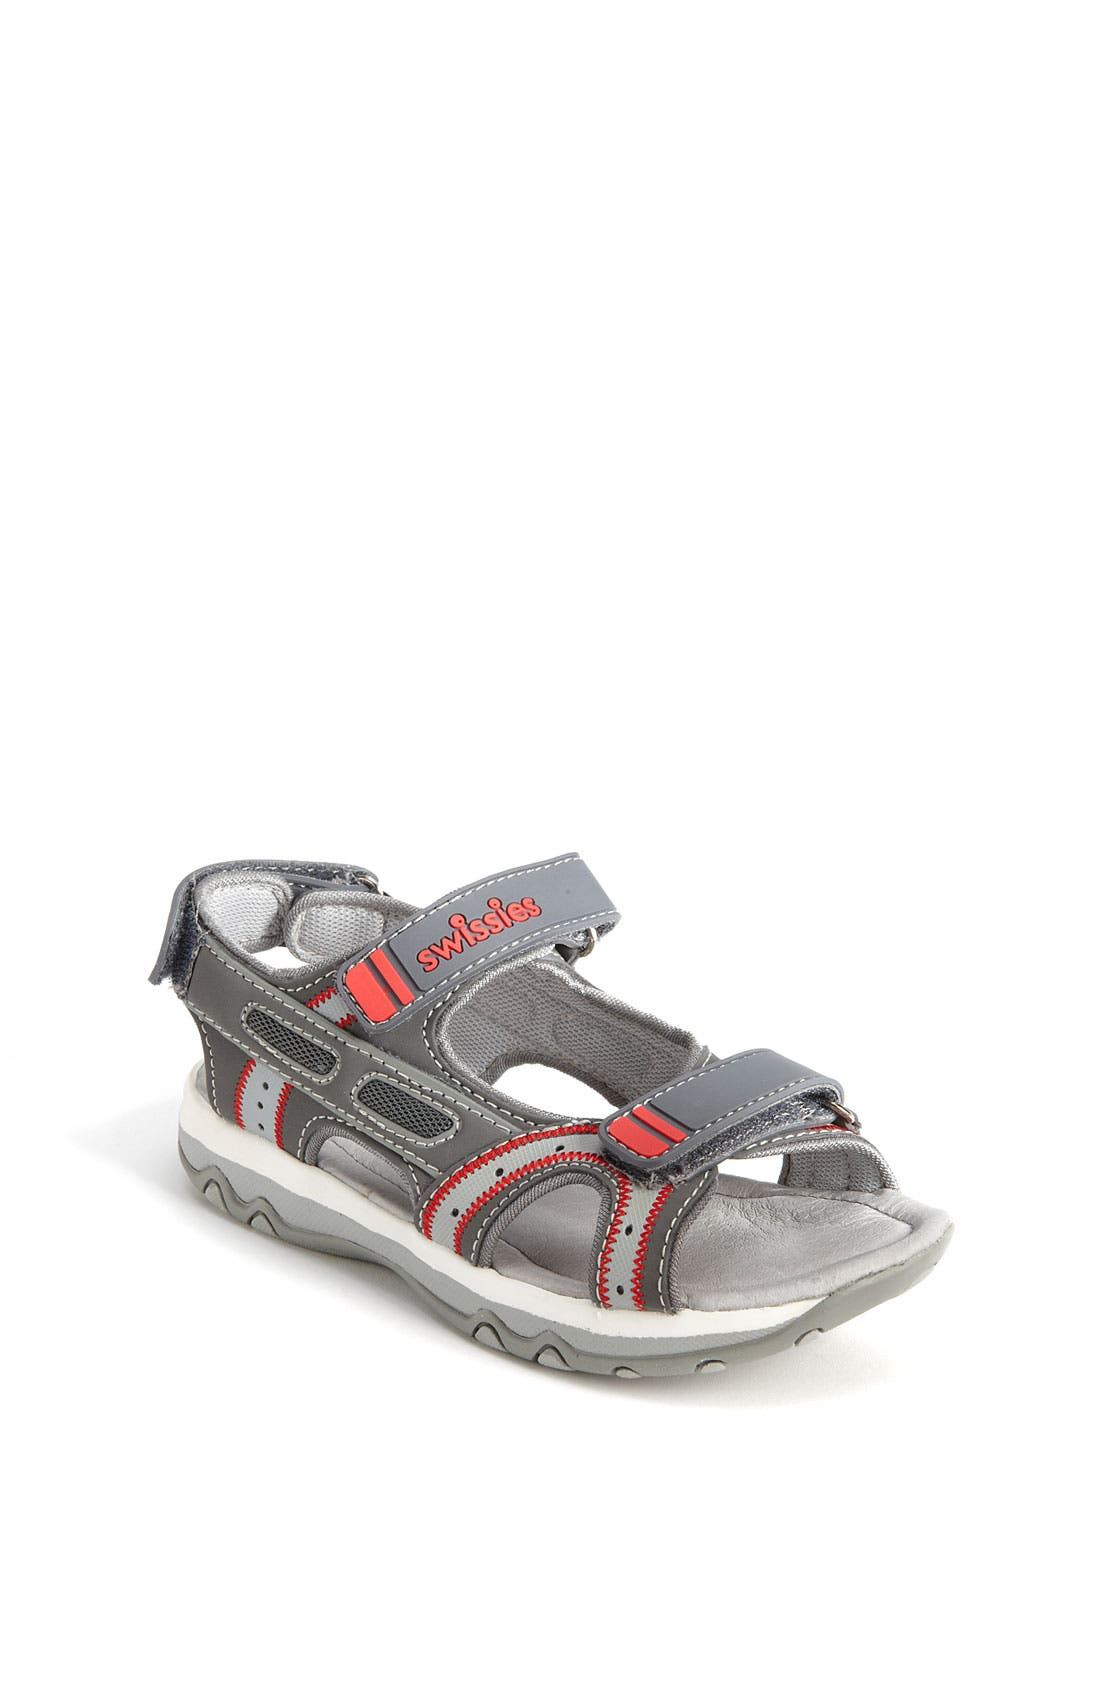 Alternate Image 1 Selected - Swissies 'Lynx' Sandal (Toddler, Little Kid & Big Kid)